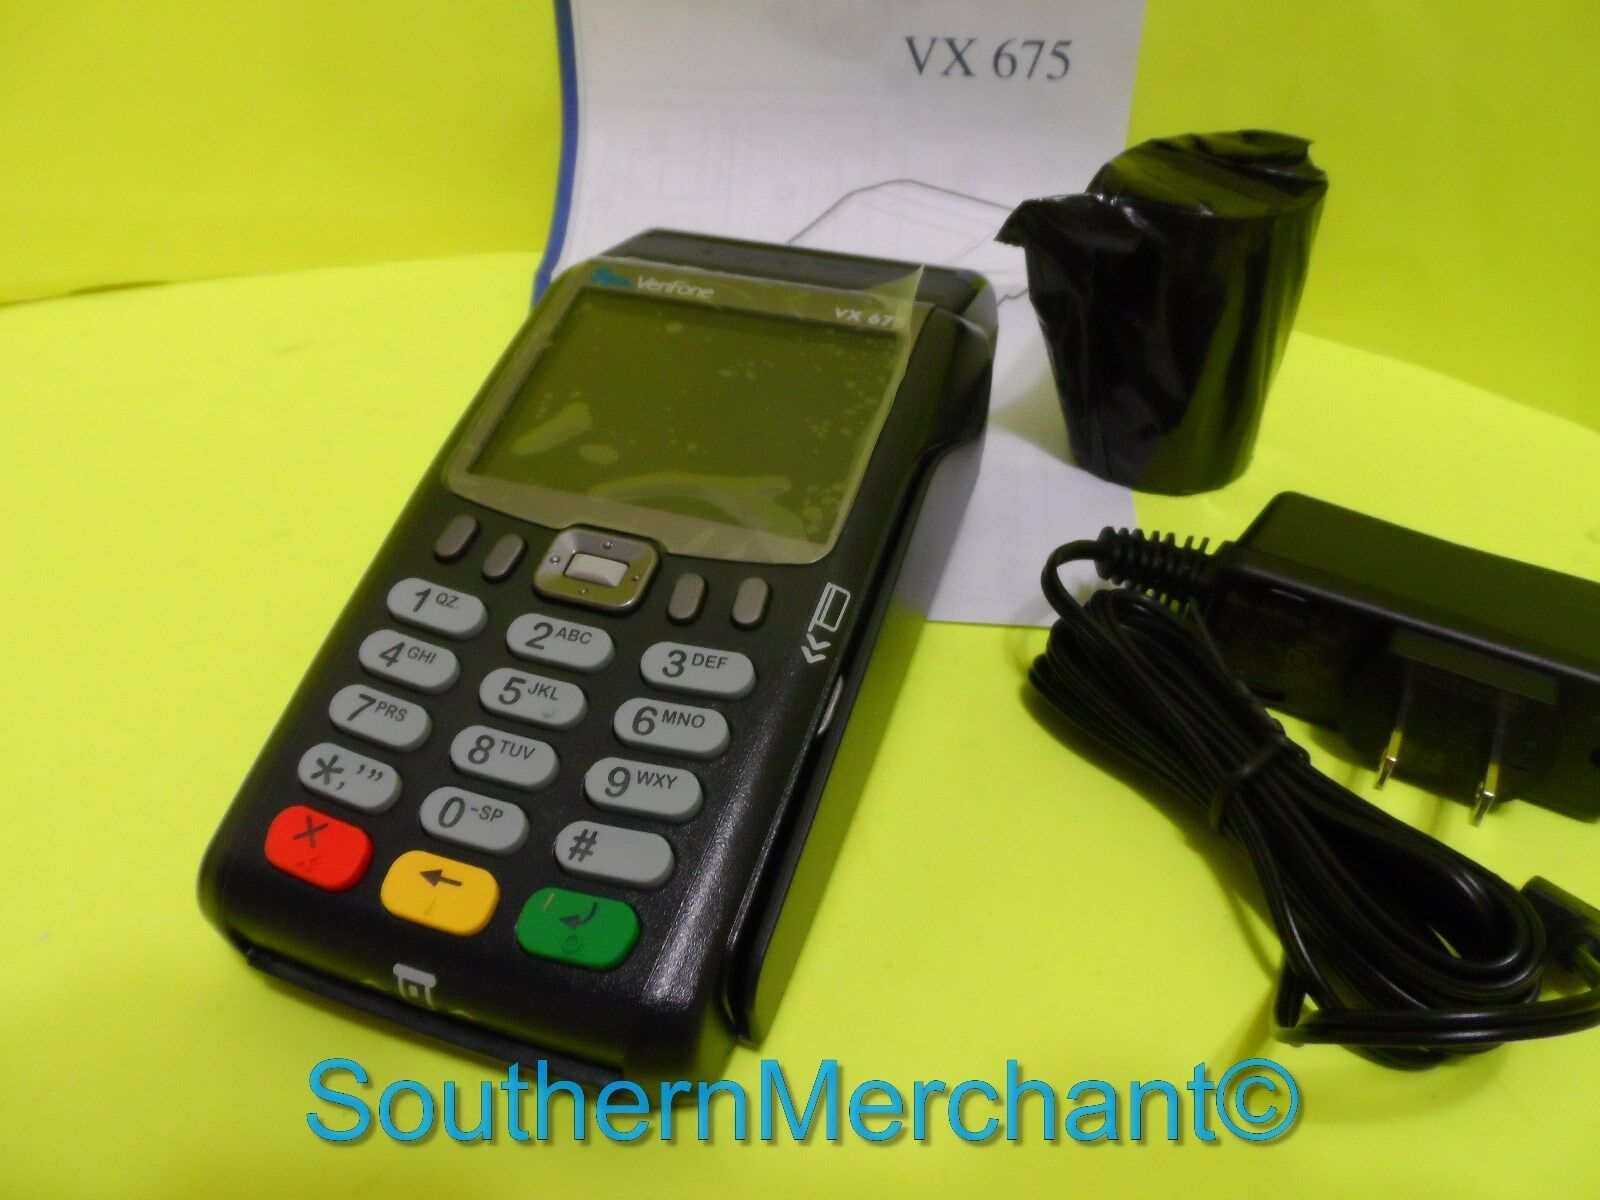 VeriFone Vx675 3G Wireless Equiment Unlocked Credit Card Reader Mobile Terminal